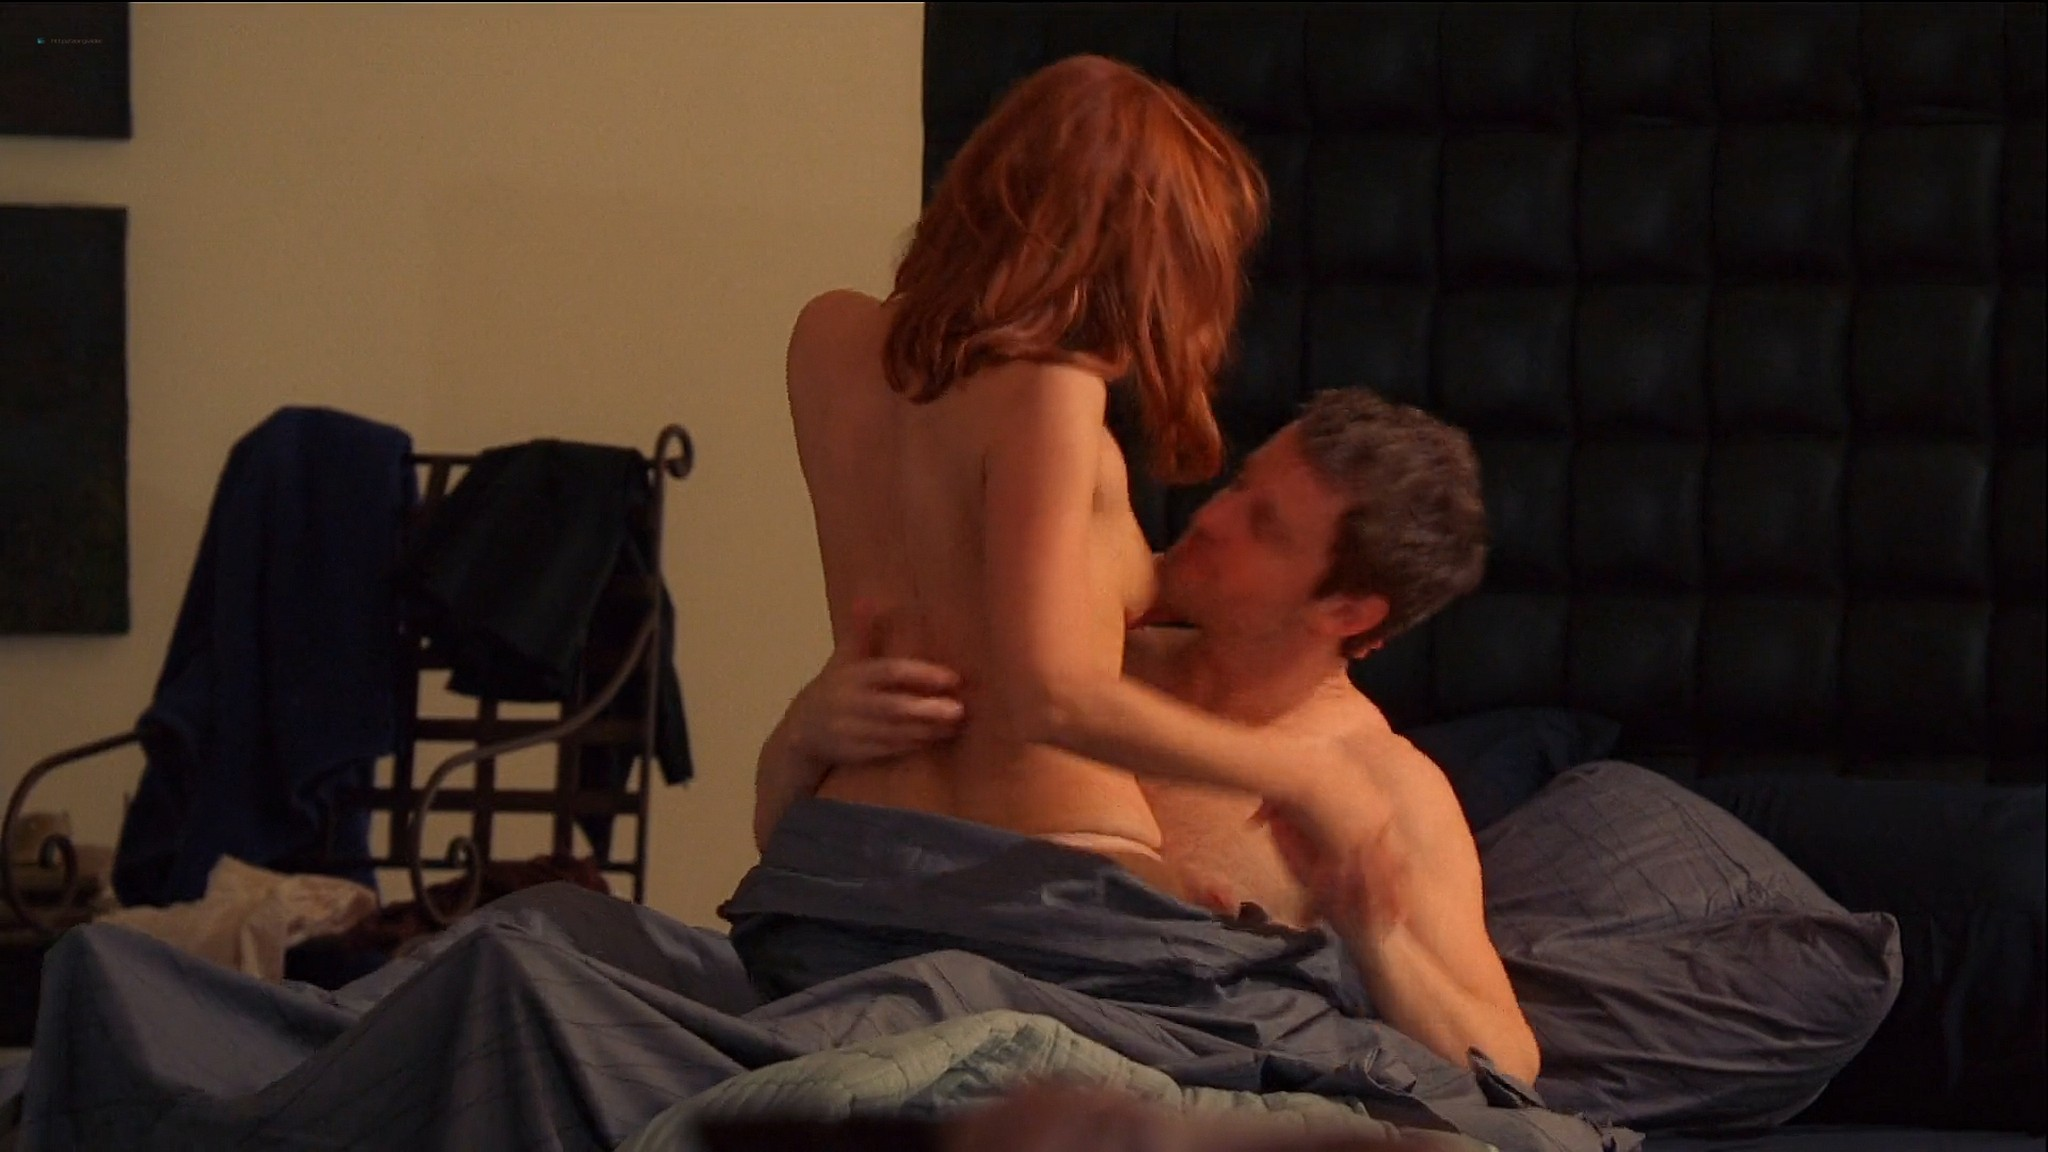 Kristen Miller hot and sex Allison Lange Brooke Burns sexy and some sex too Single White Female 2 2005 1080p Web 7